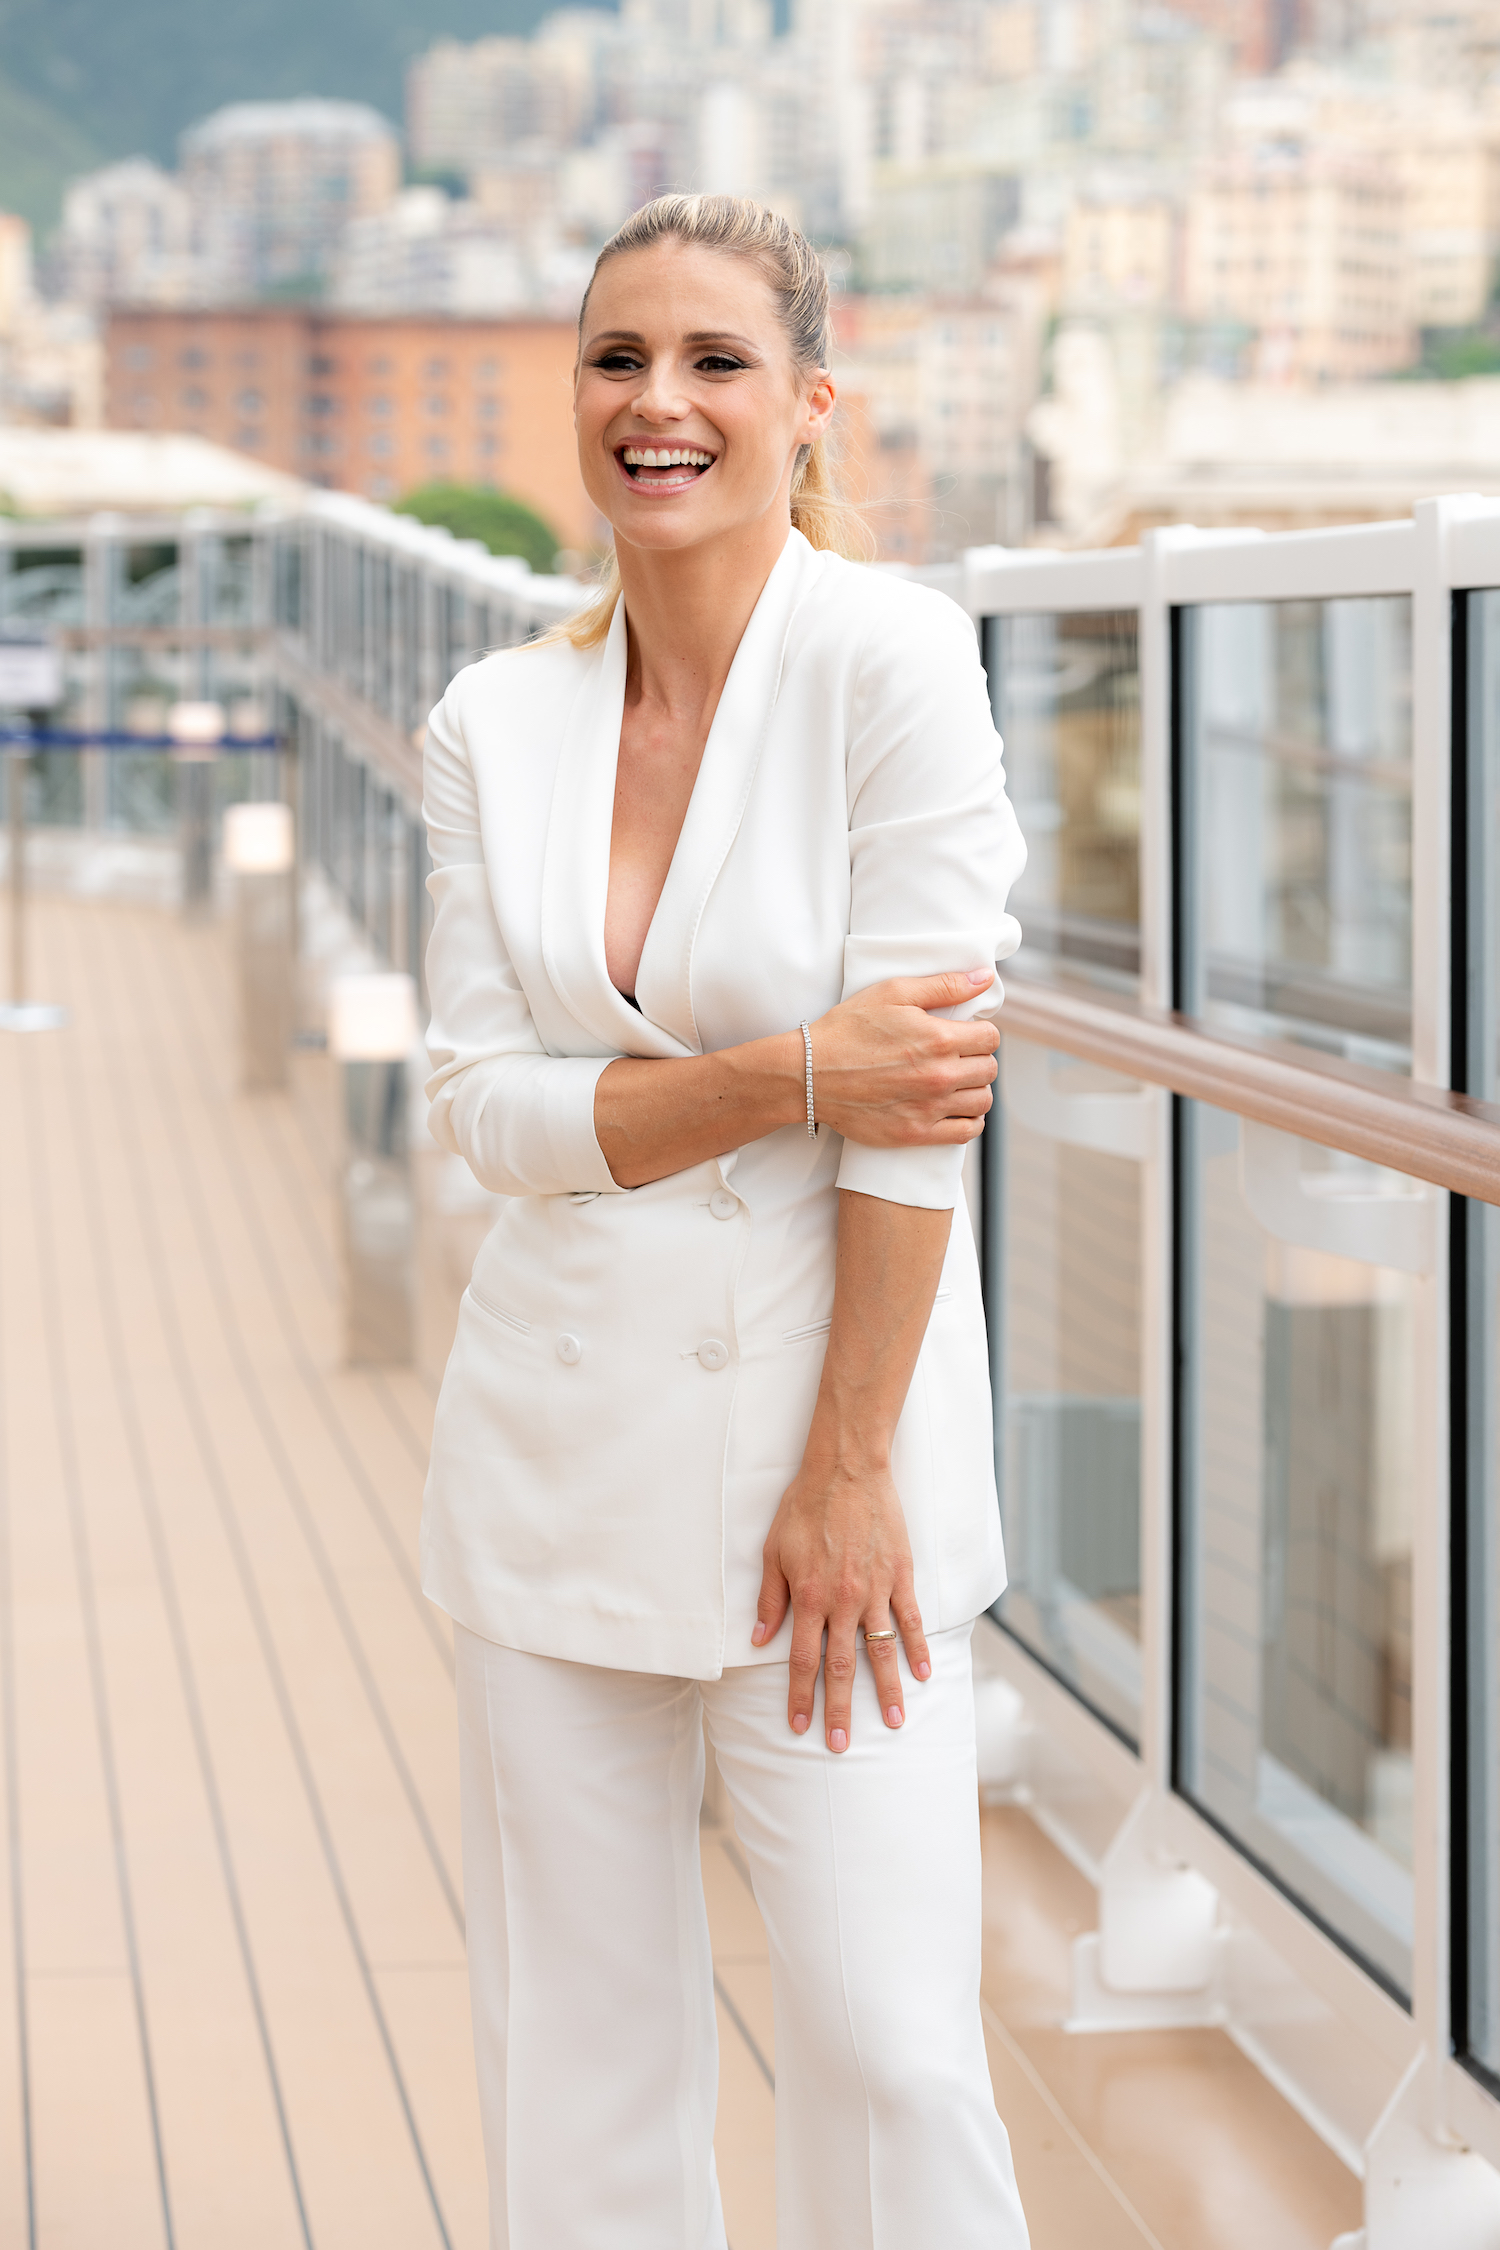 Michelle Hunziker standing on the deck of MSC Seaview docked in Genoa. Michelle is wearing a white trouser suite and has an open mouth smile.